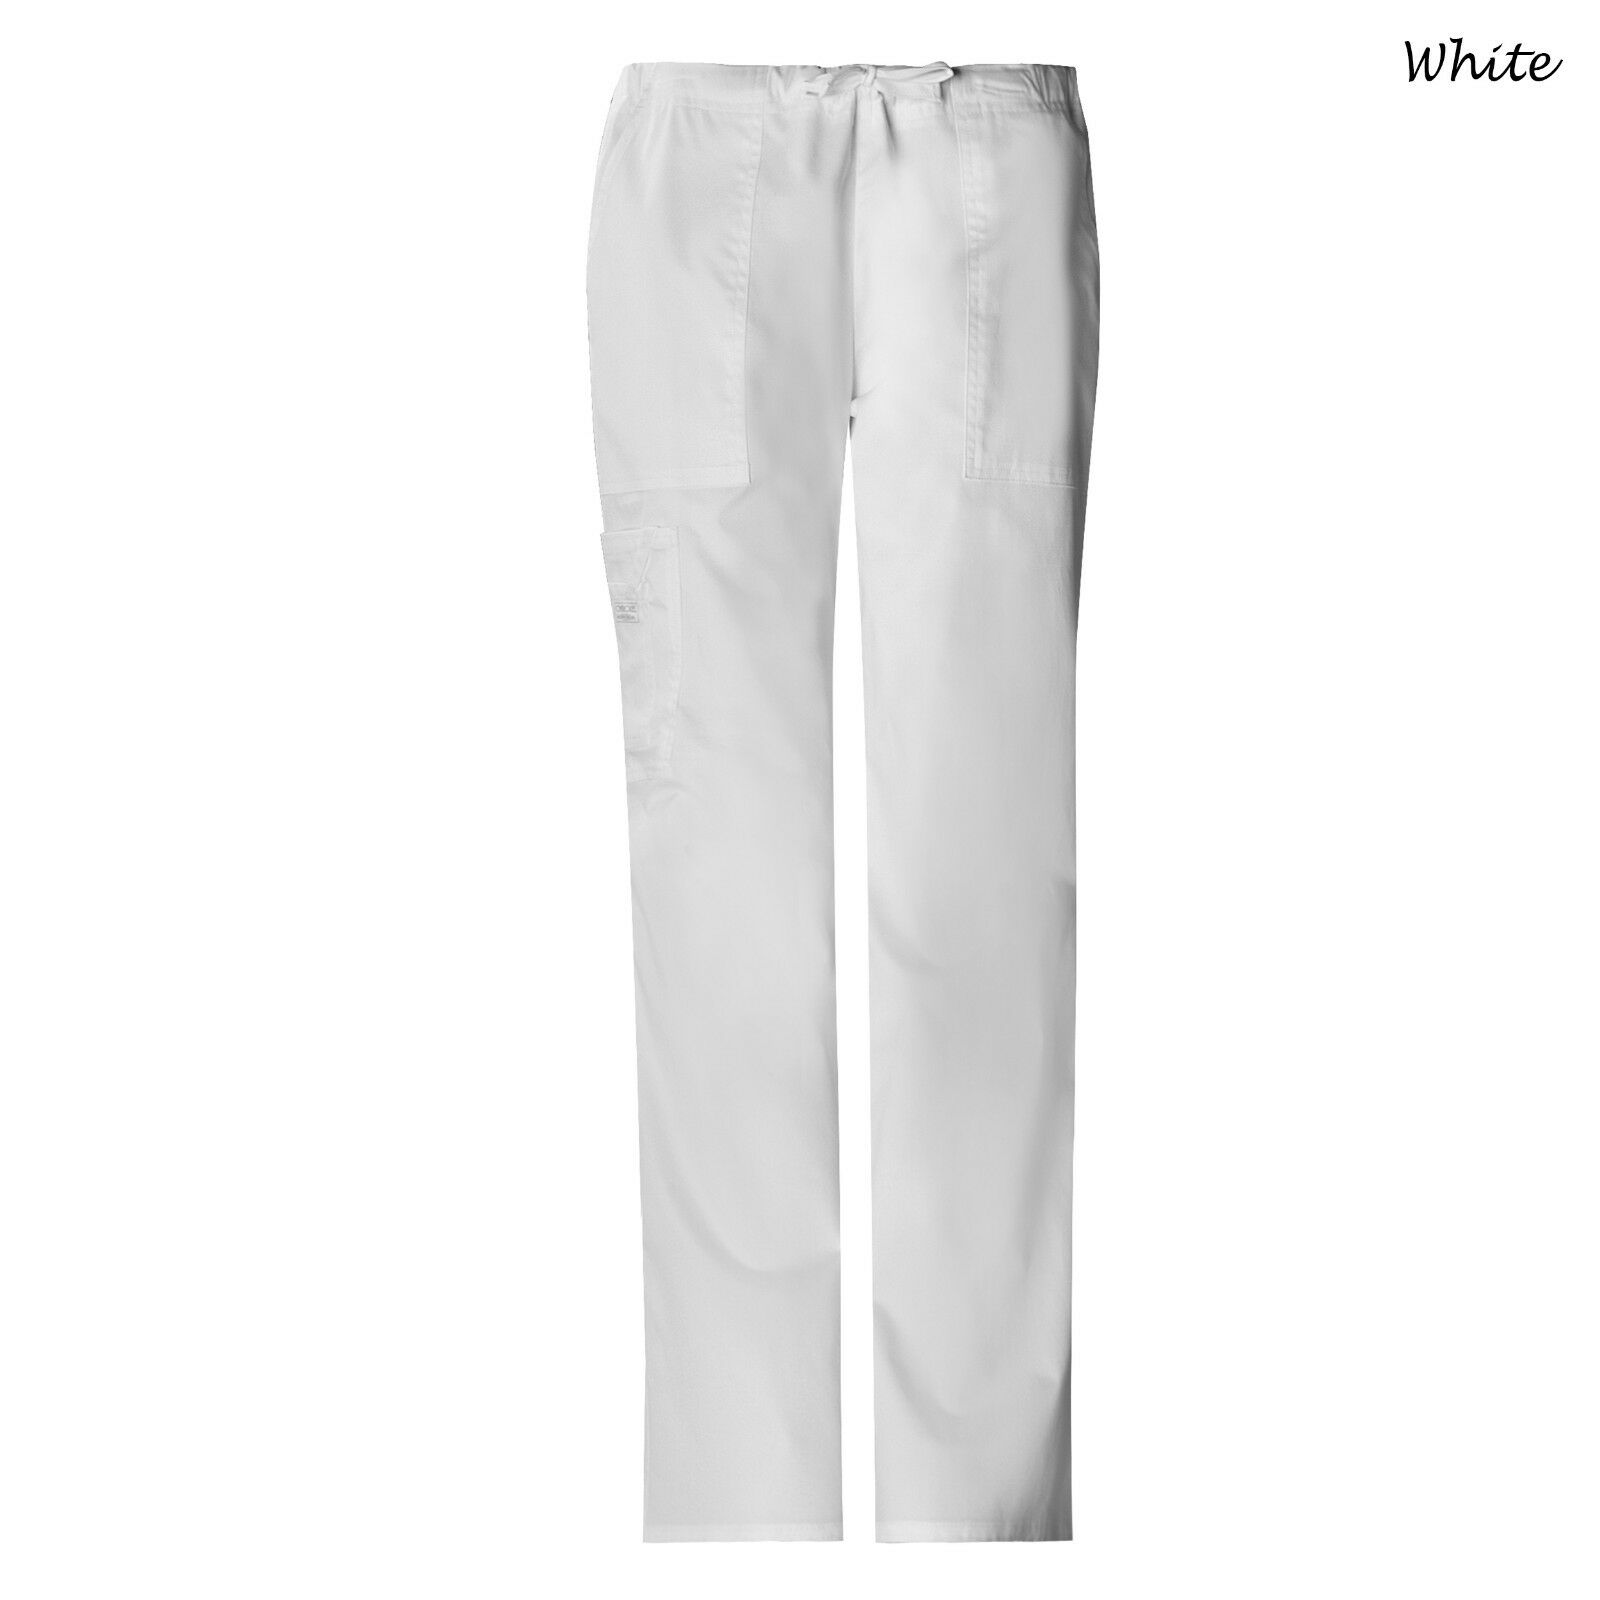 59ef93474d5 Cherokee Womens Workwear Scrubs 4044 Mid-rise Core Stretch Drawstring Cargo  Pant White XL Tall for sale online | eBay